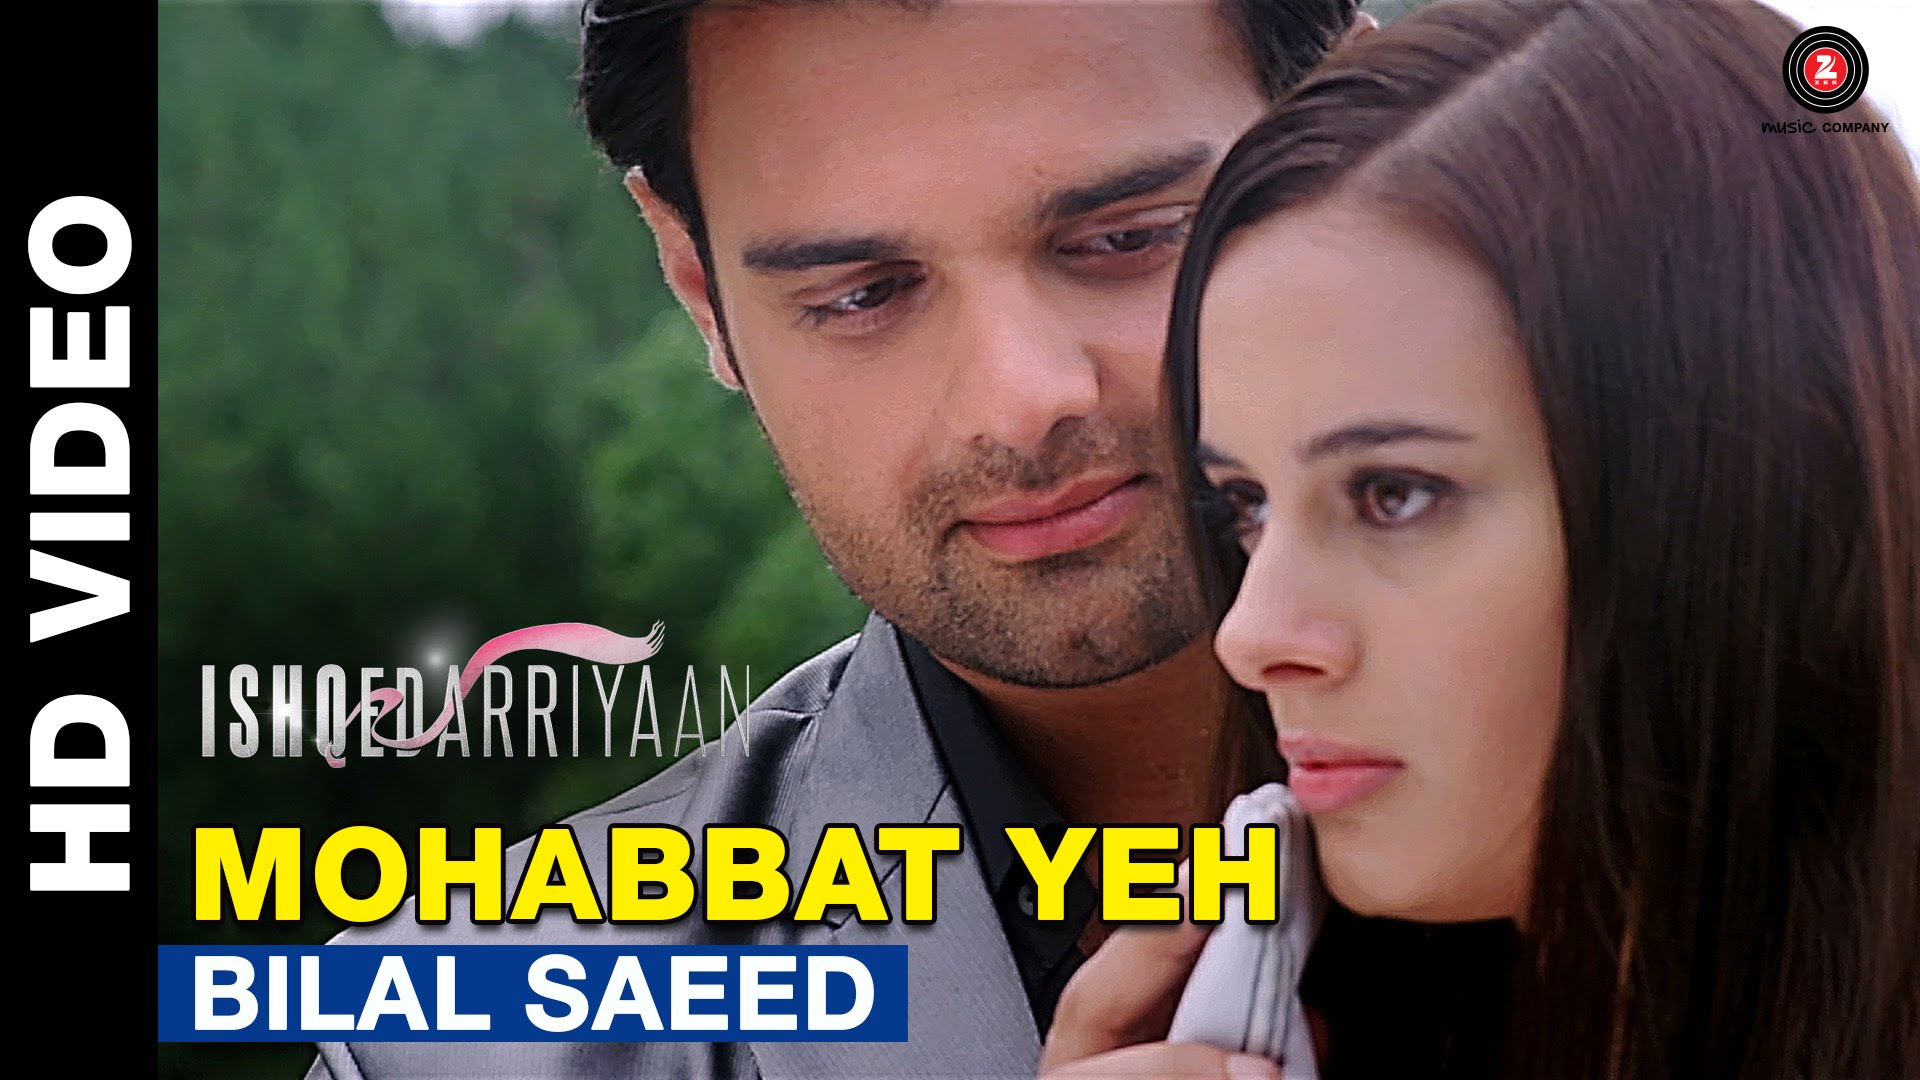 Mohabbat Yeh Video Song – Ishqedarriyan   Official Video Song